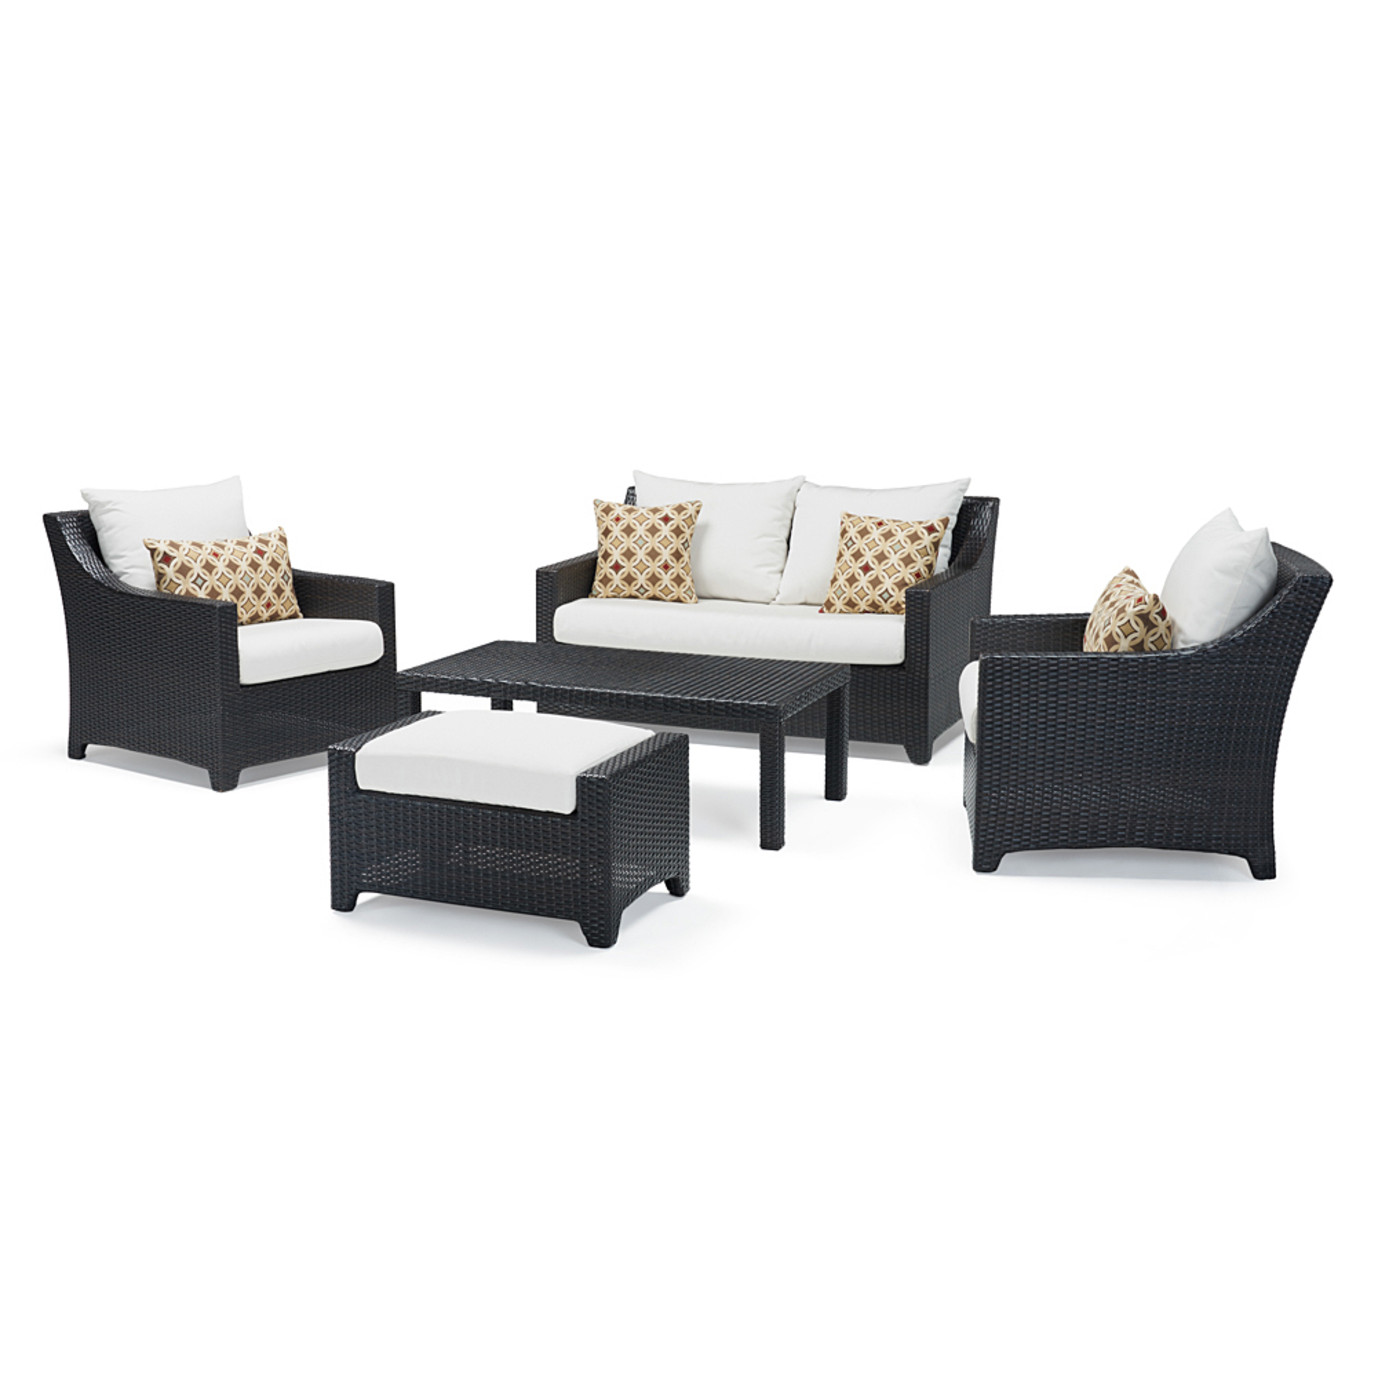 Deco™ 5pc Love and Club Seating Set - Moroccan Cream